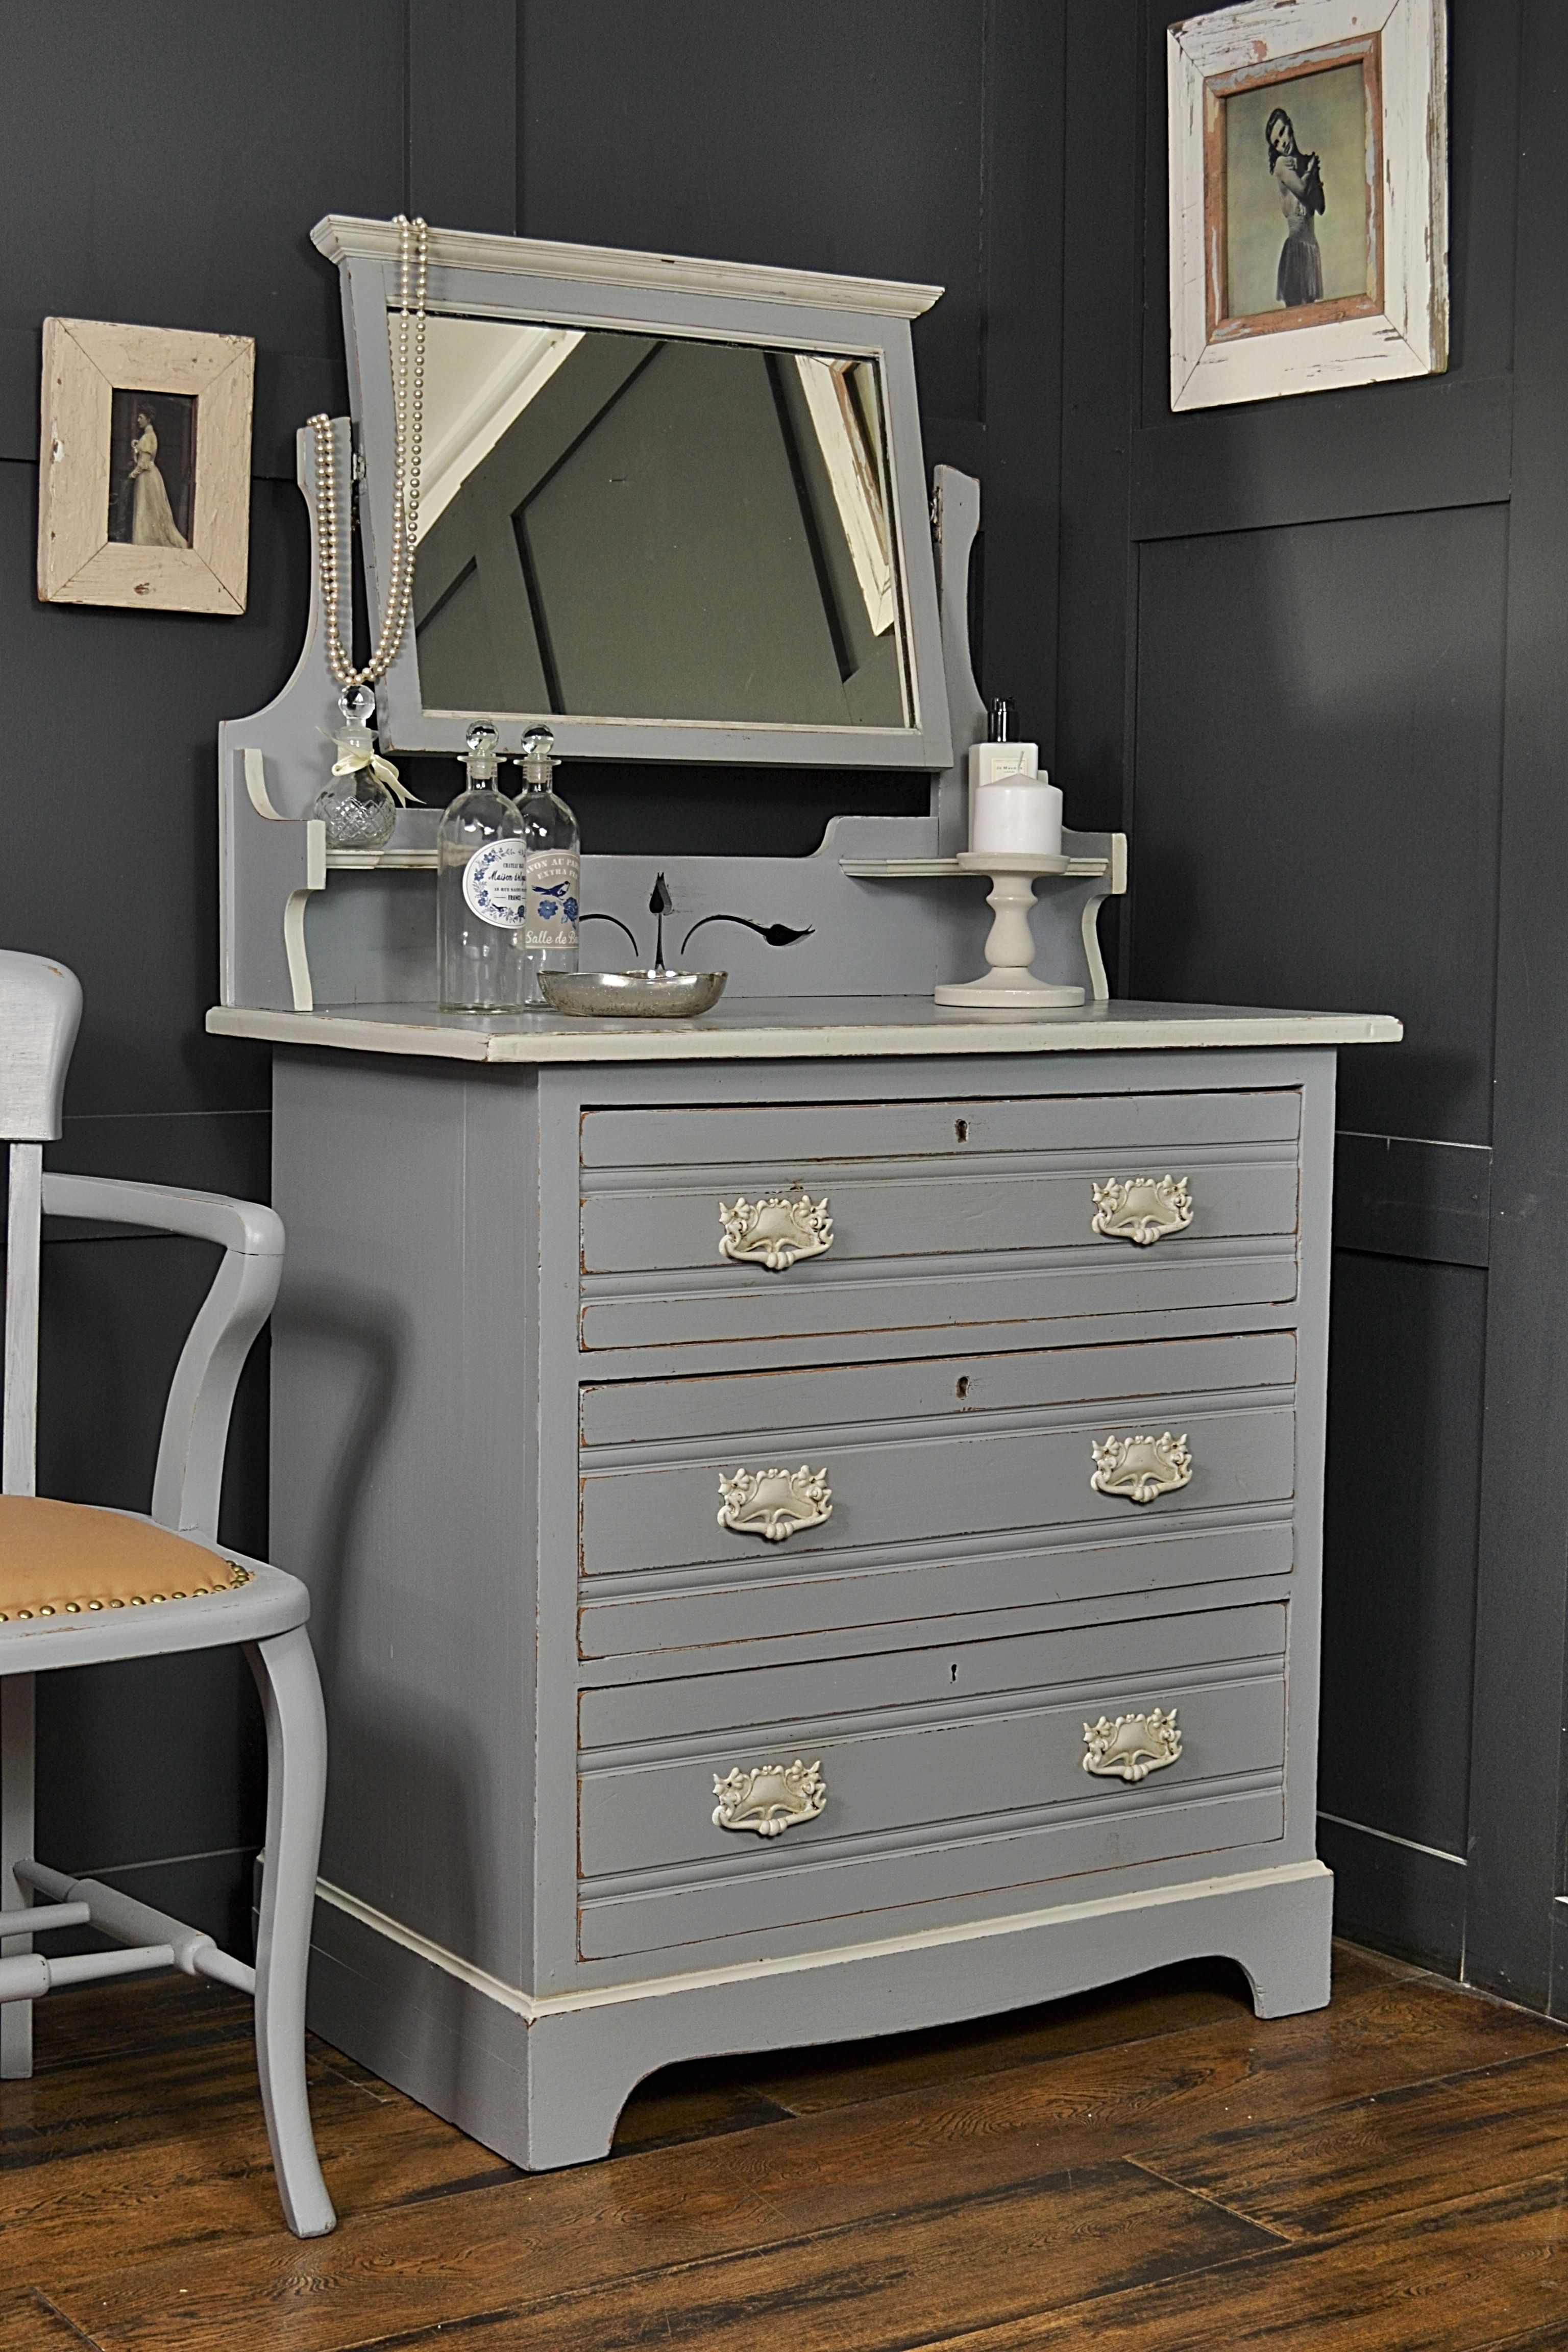 Period Bedroom Furniture Want A Period Statement Piece For Your Bedroom This Stunning